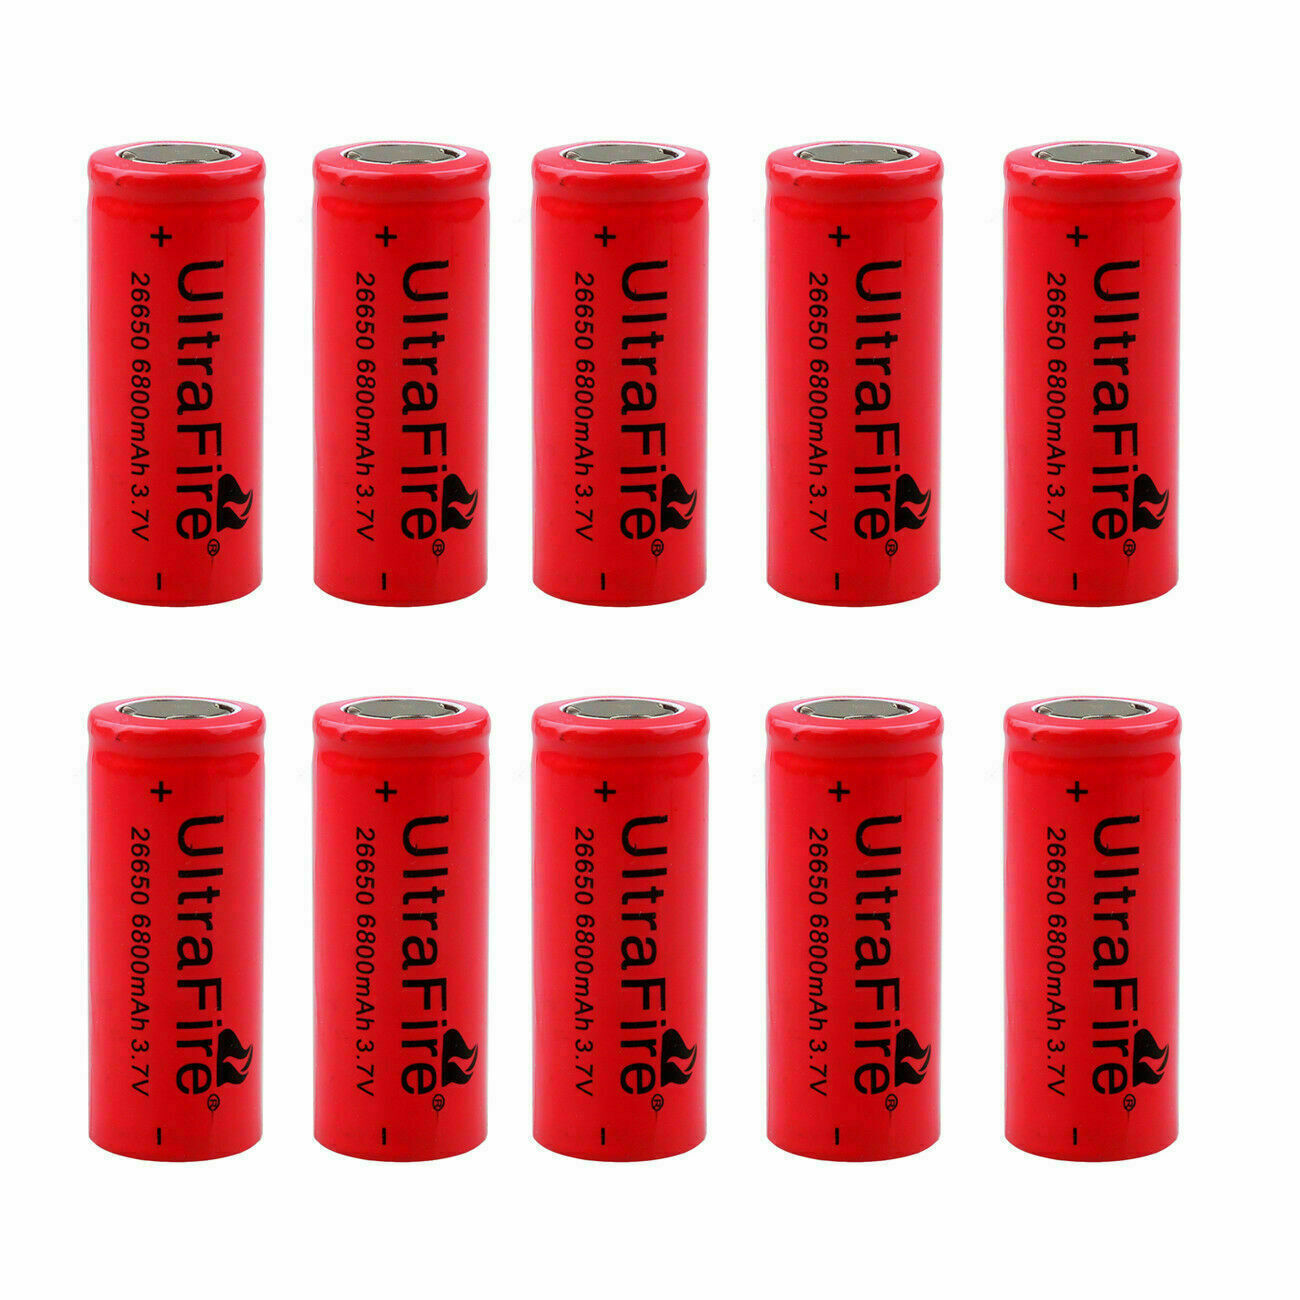 UltraFire 26650 Battery 6800mAh 3.7V Flat Top Li-ion Rechargeable Cell For Torch